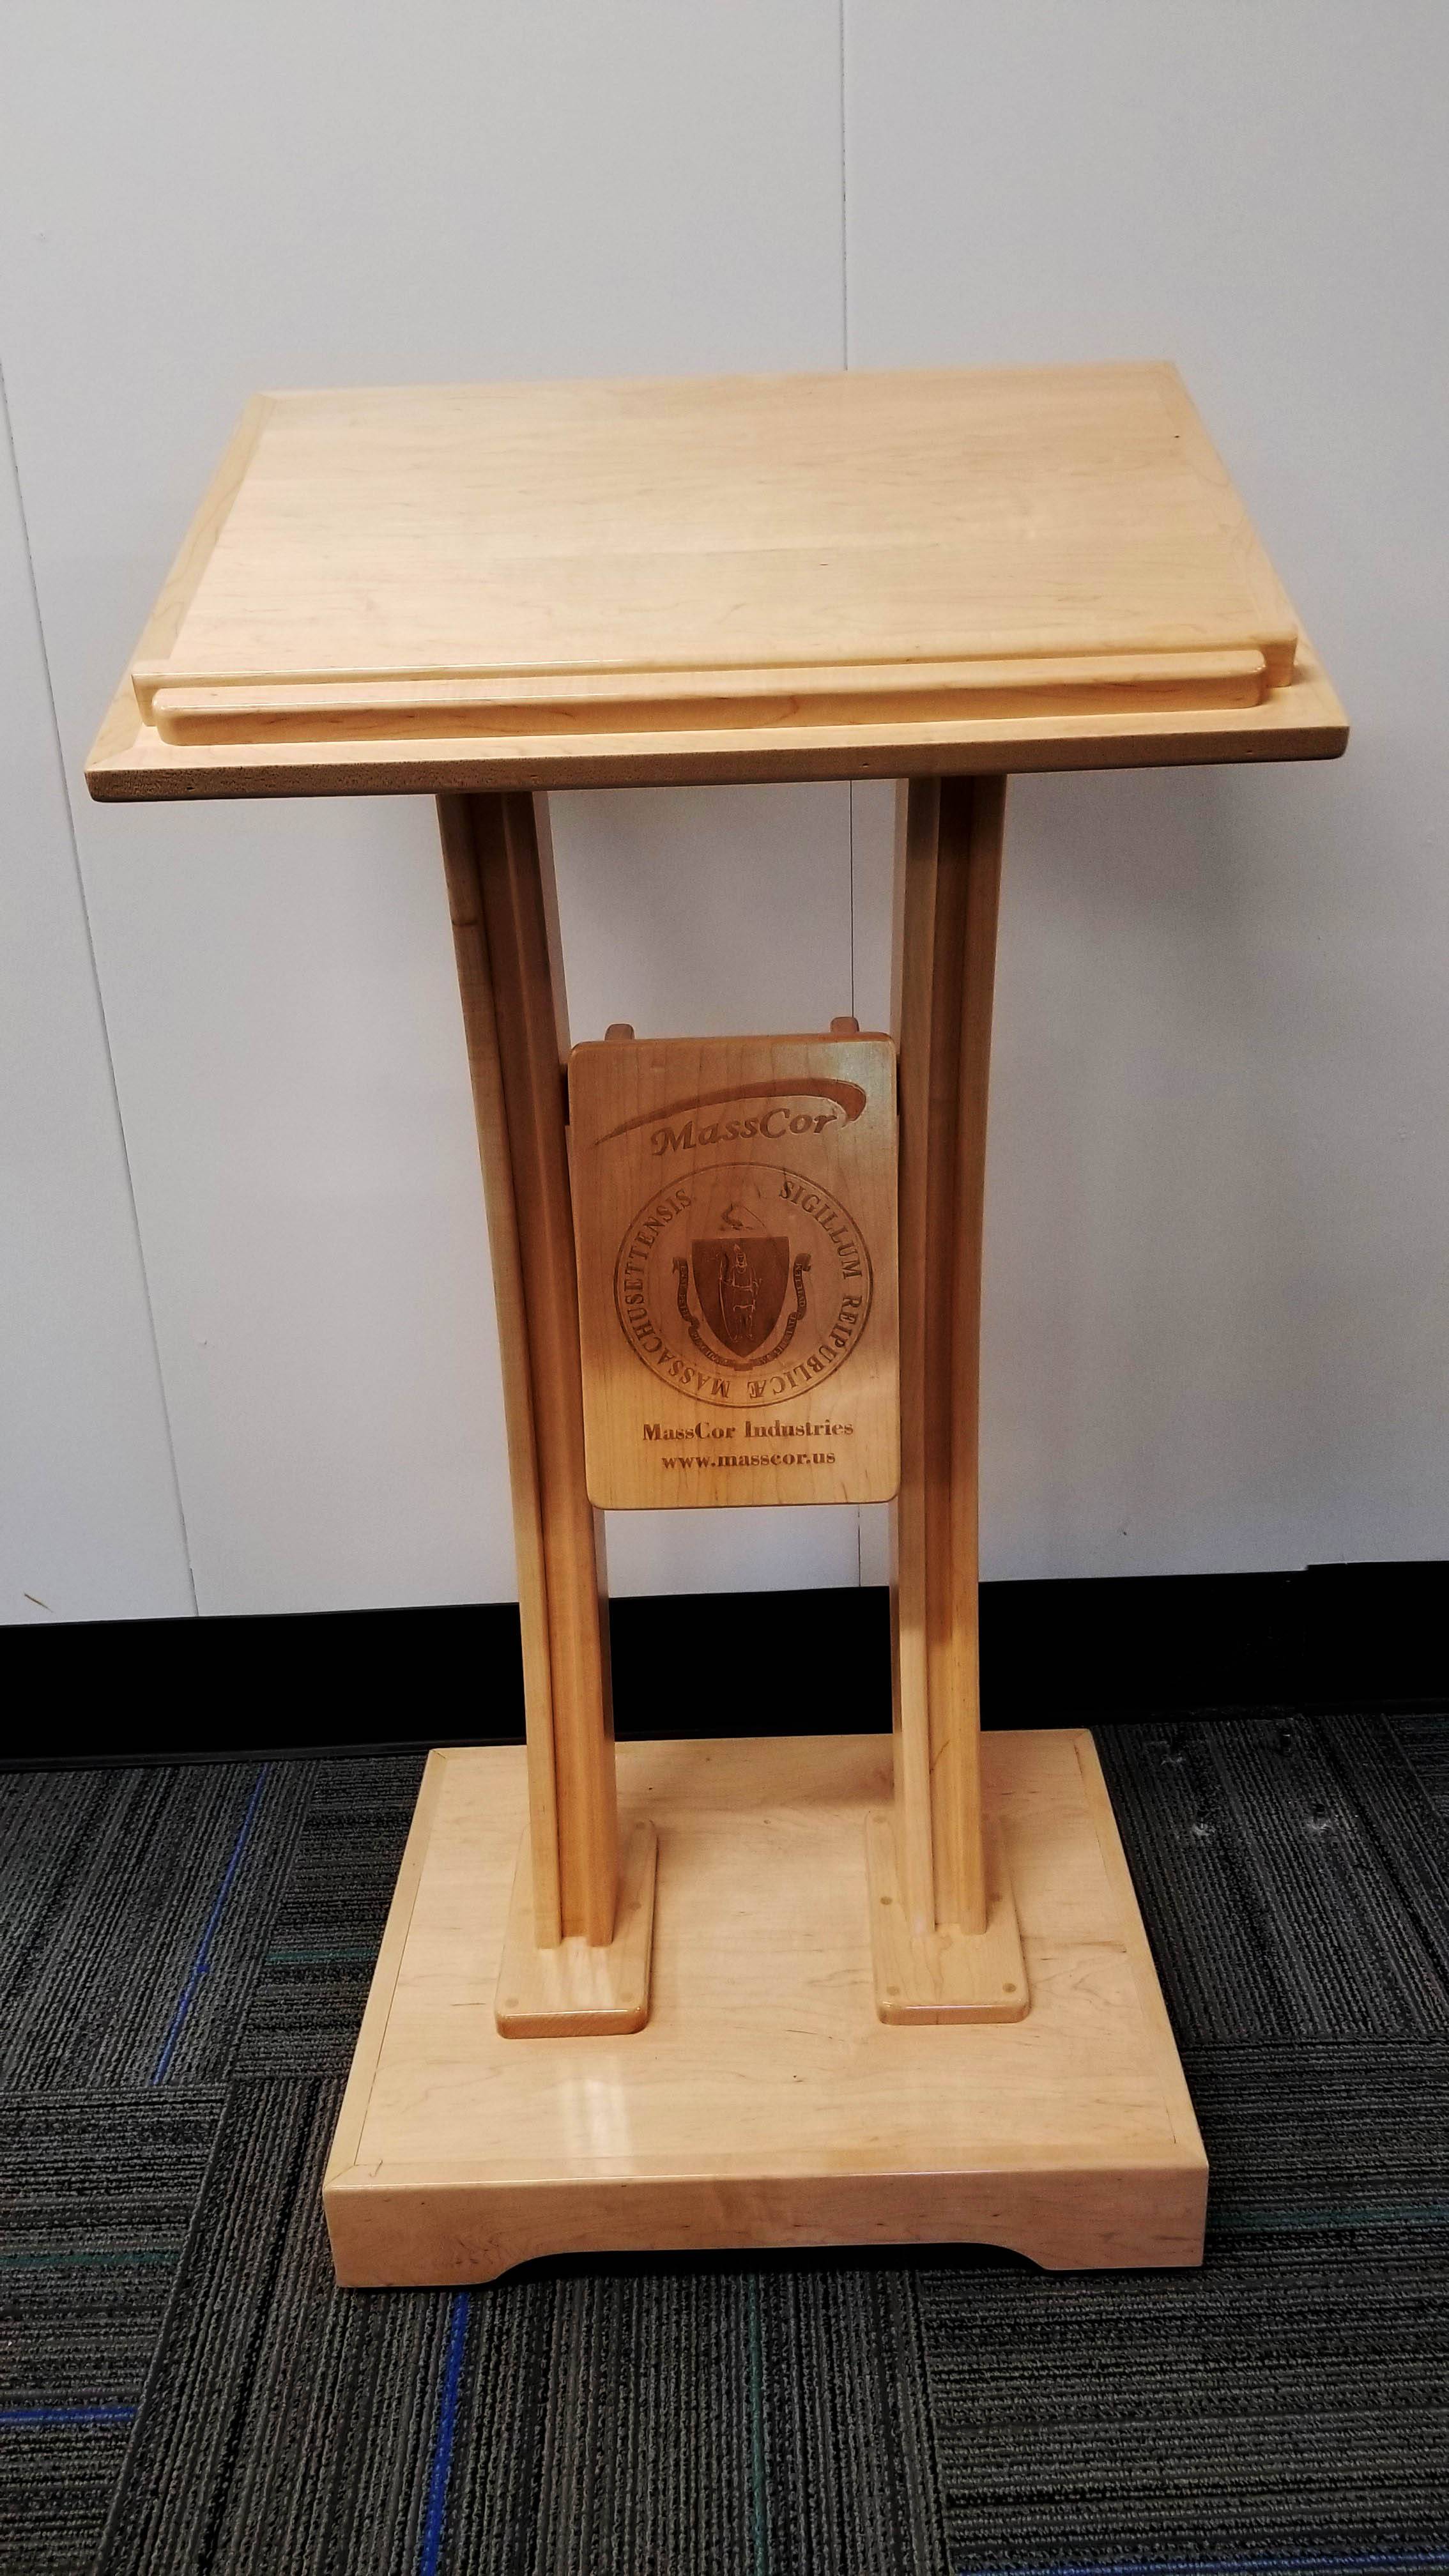 Custom Lectern with Laser Engraving